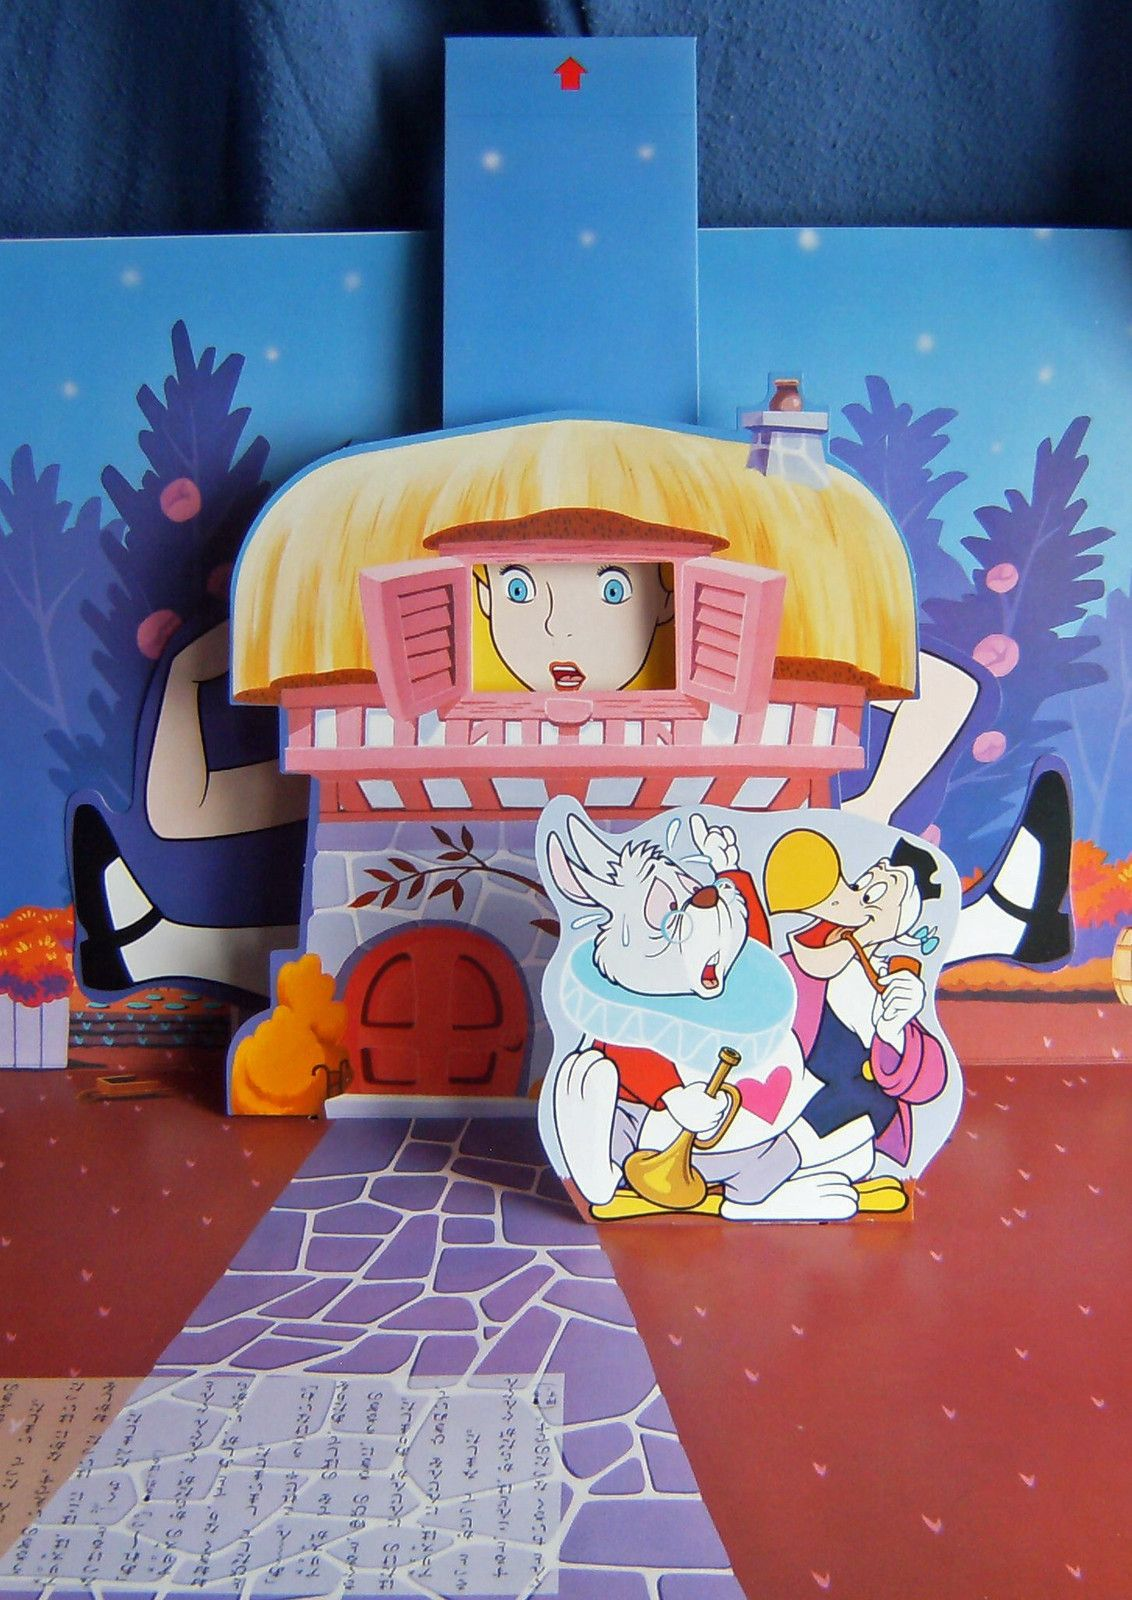 alice in wonderland pop up book ese disney s alice in white alice in wonderland pop up book ese